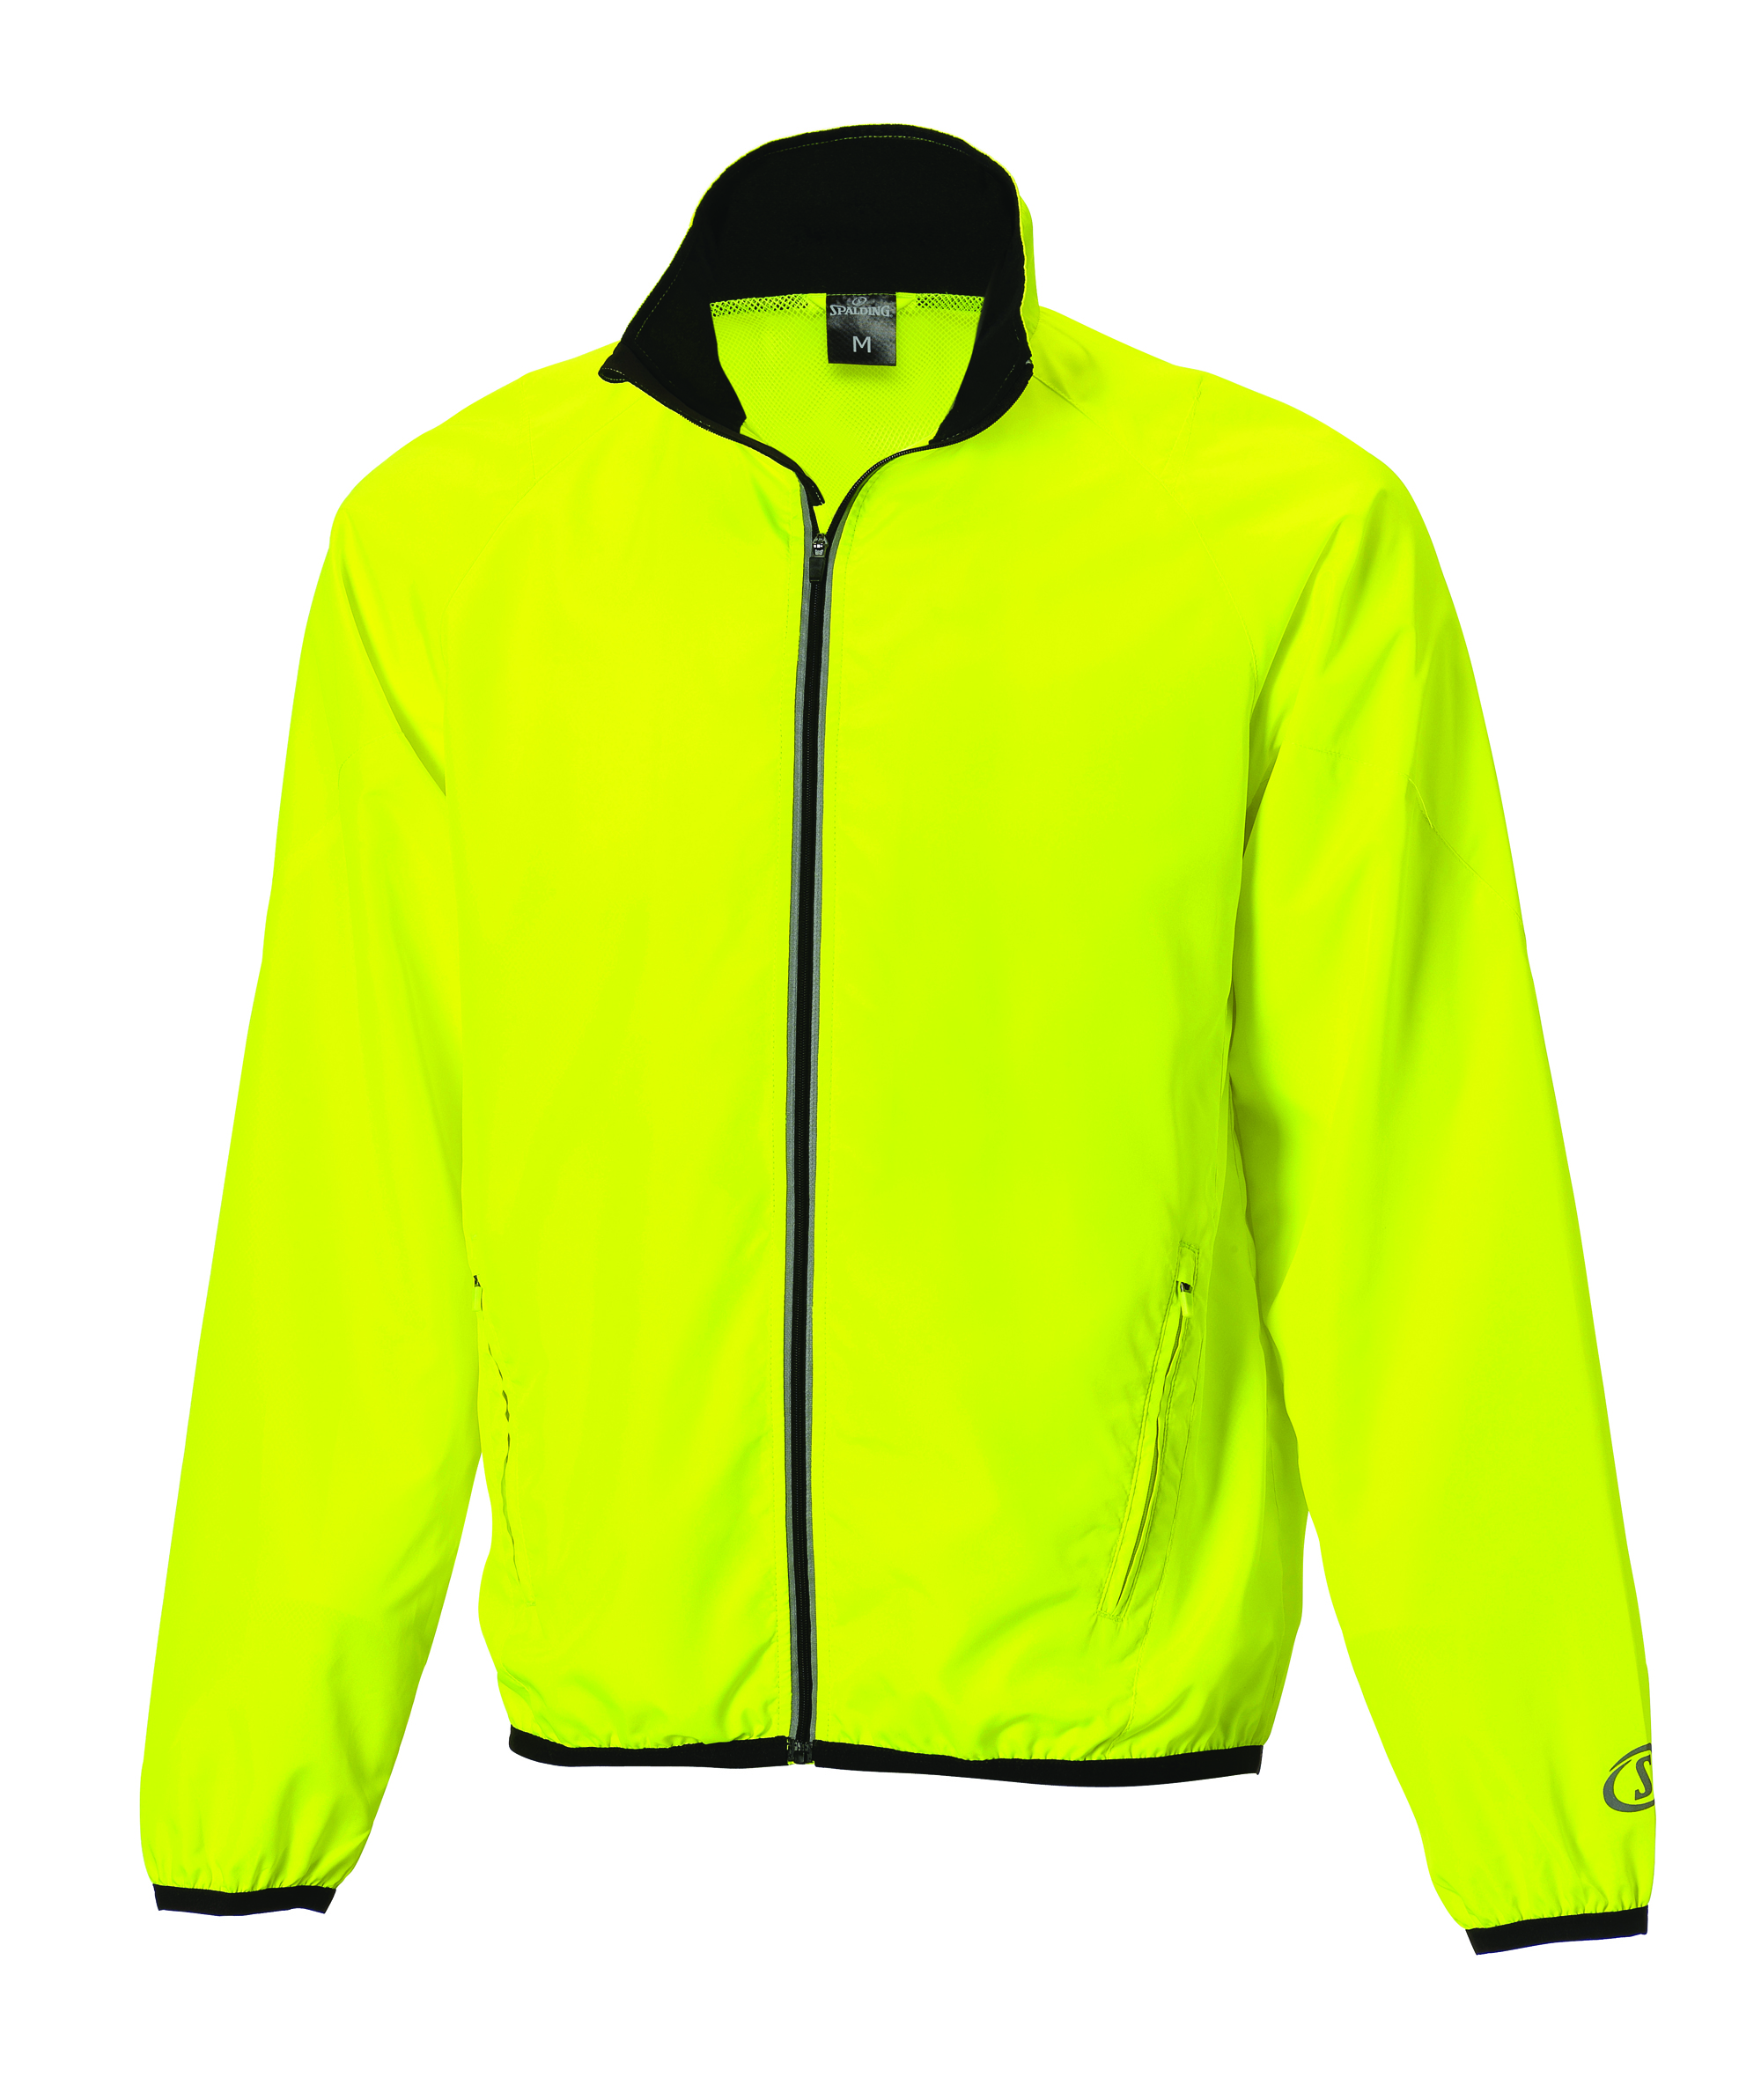 Adrenalin Jacket - Night Yellow - XL